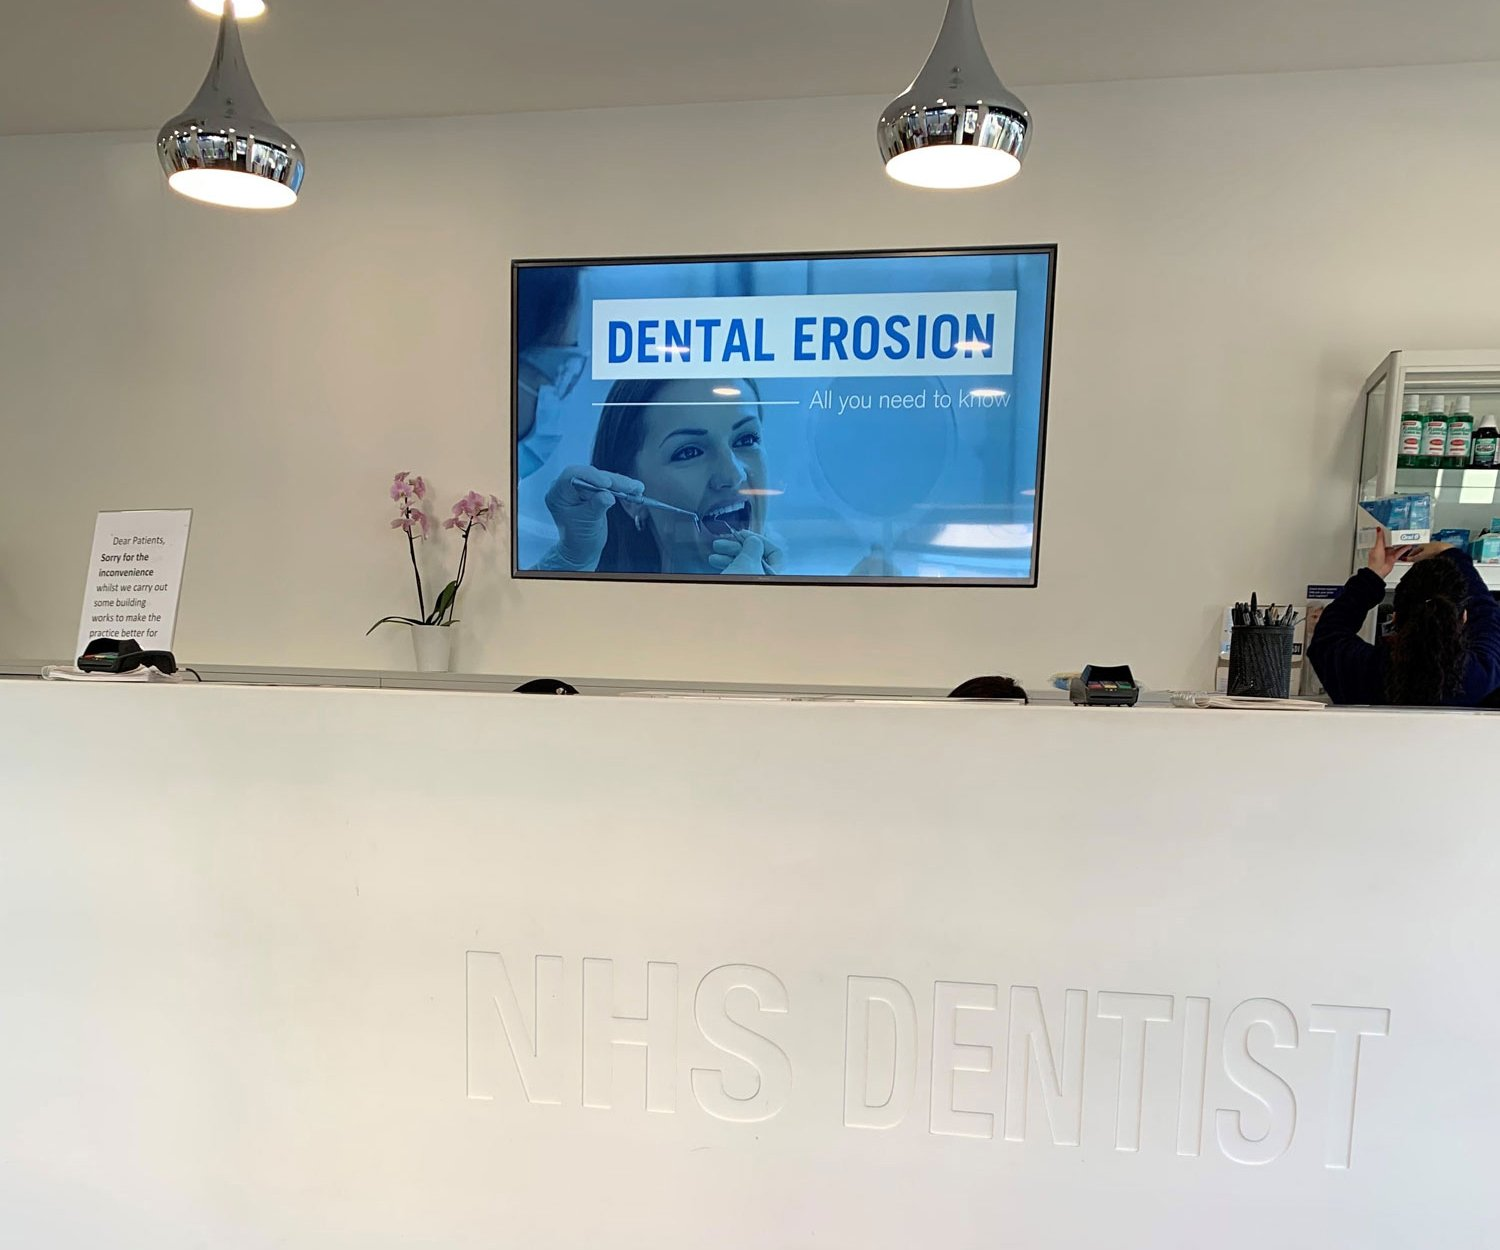 NHS Dentist choose Envisage Dental TV